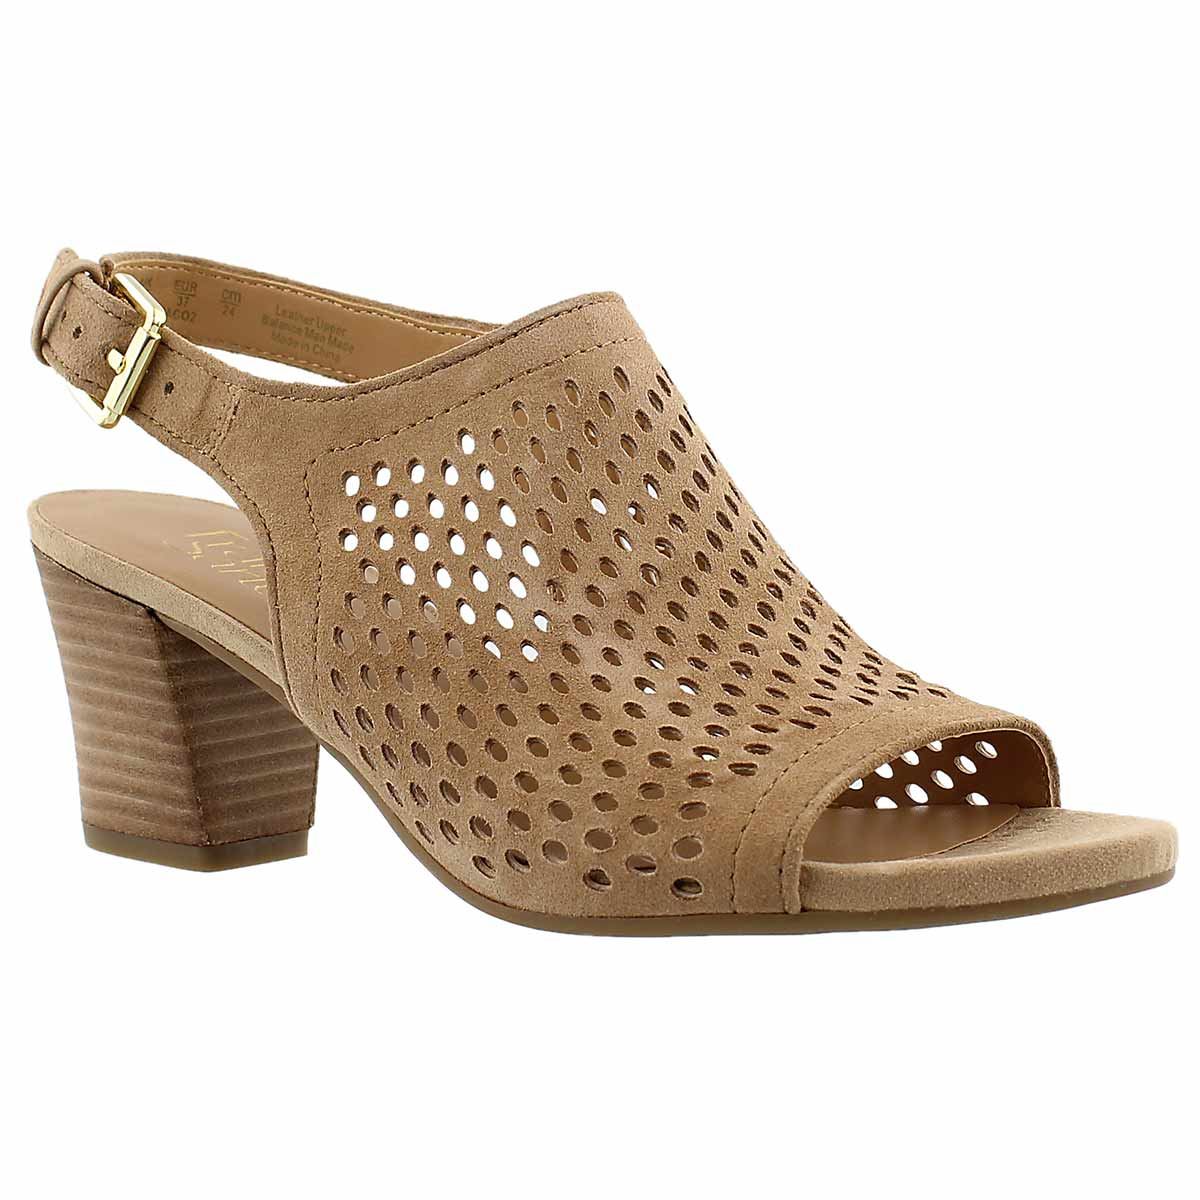 Lds Monaco 2 snd perforated dress sandal